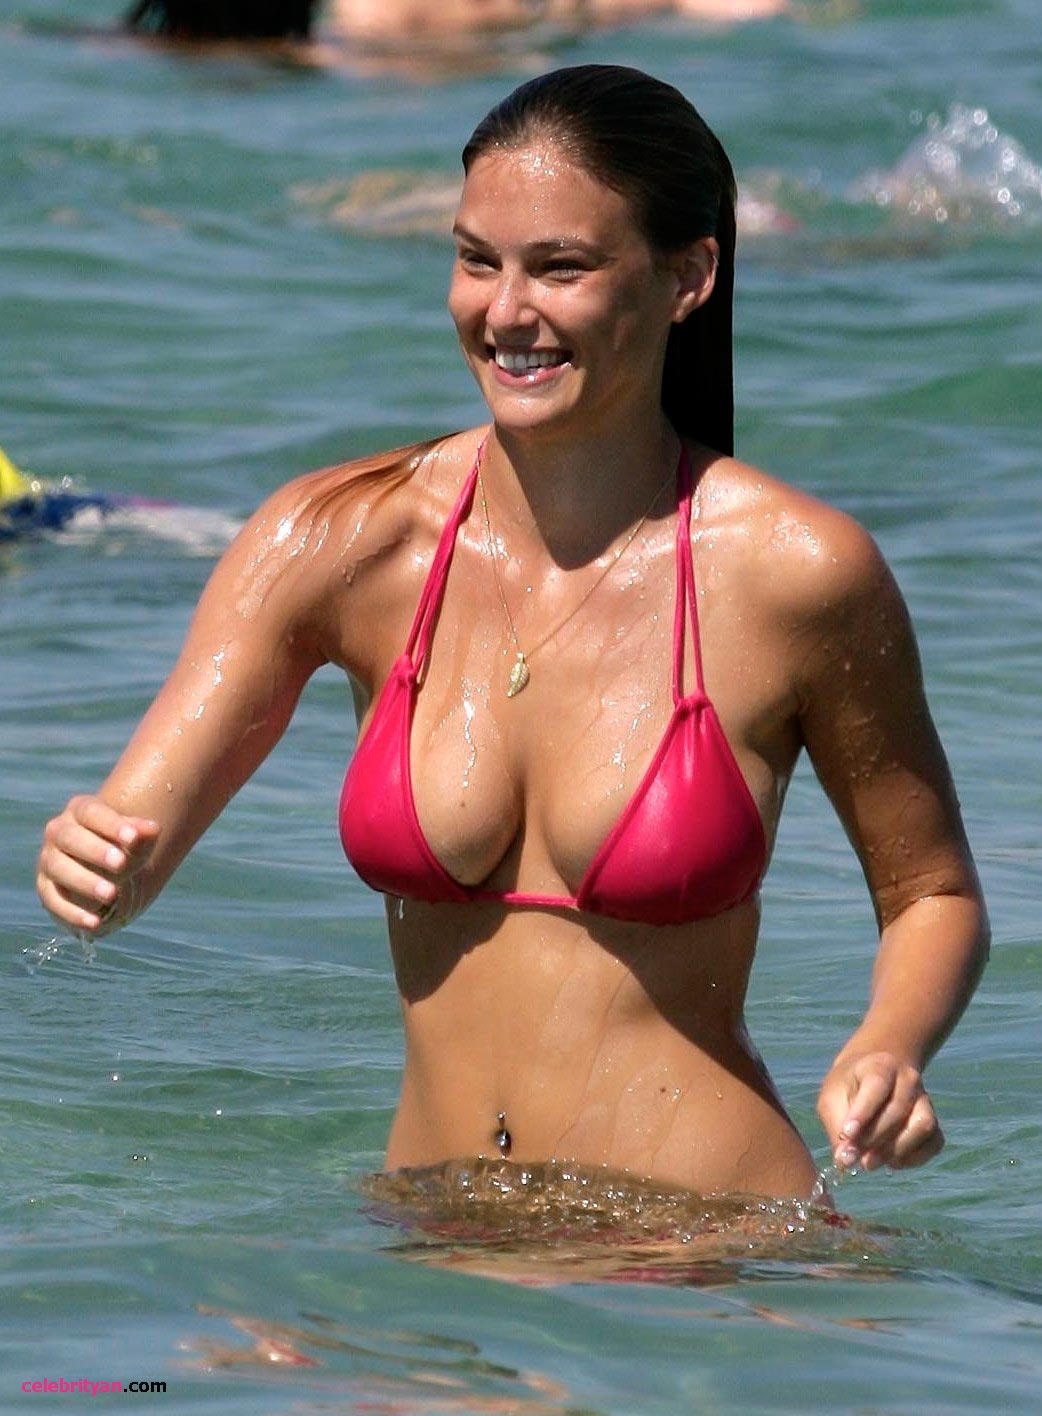 Fav watch Bar refaeli bikini love seeing